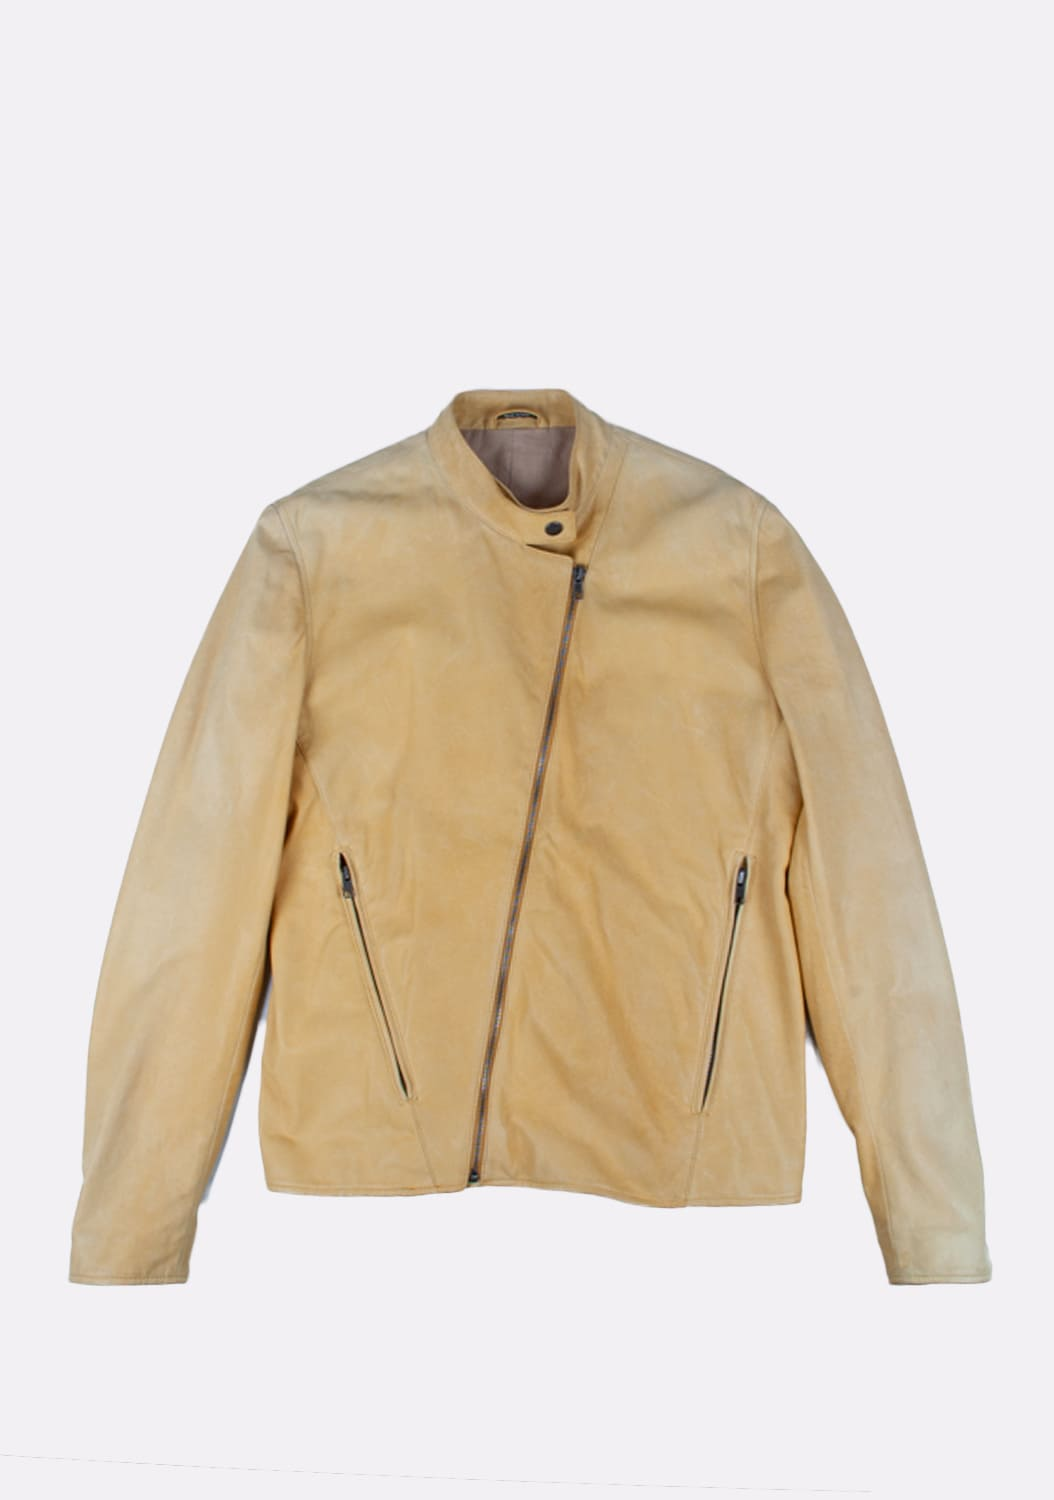 urocklt-Maison-Martin-Margiela-10-Leather-Men-Jacket-Size-48-ITA (1)